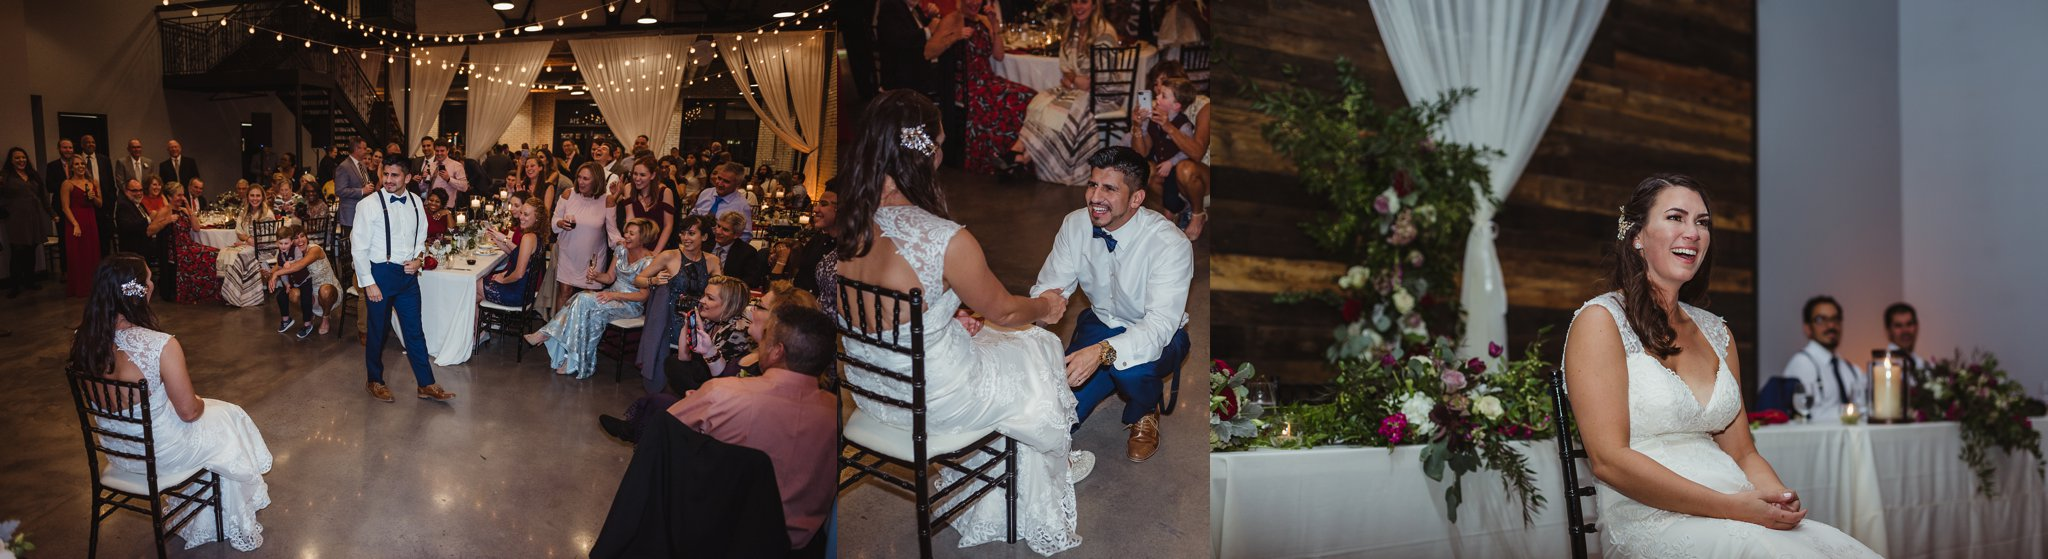 The groom does a dance and gets the garter from his bride at their wedding reception at Market Hall in downtown Raleigh, photos by Rose Trail Images.